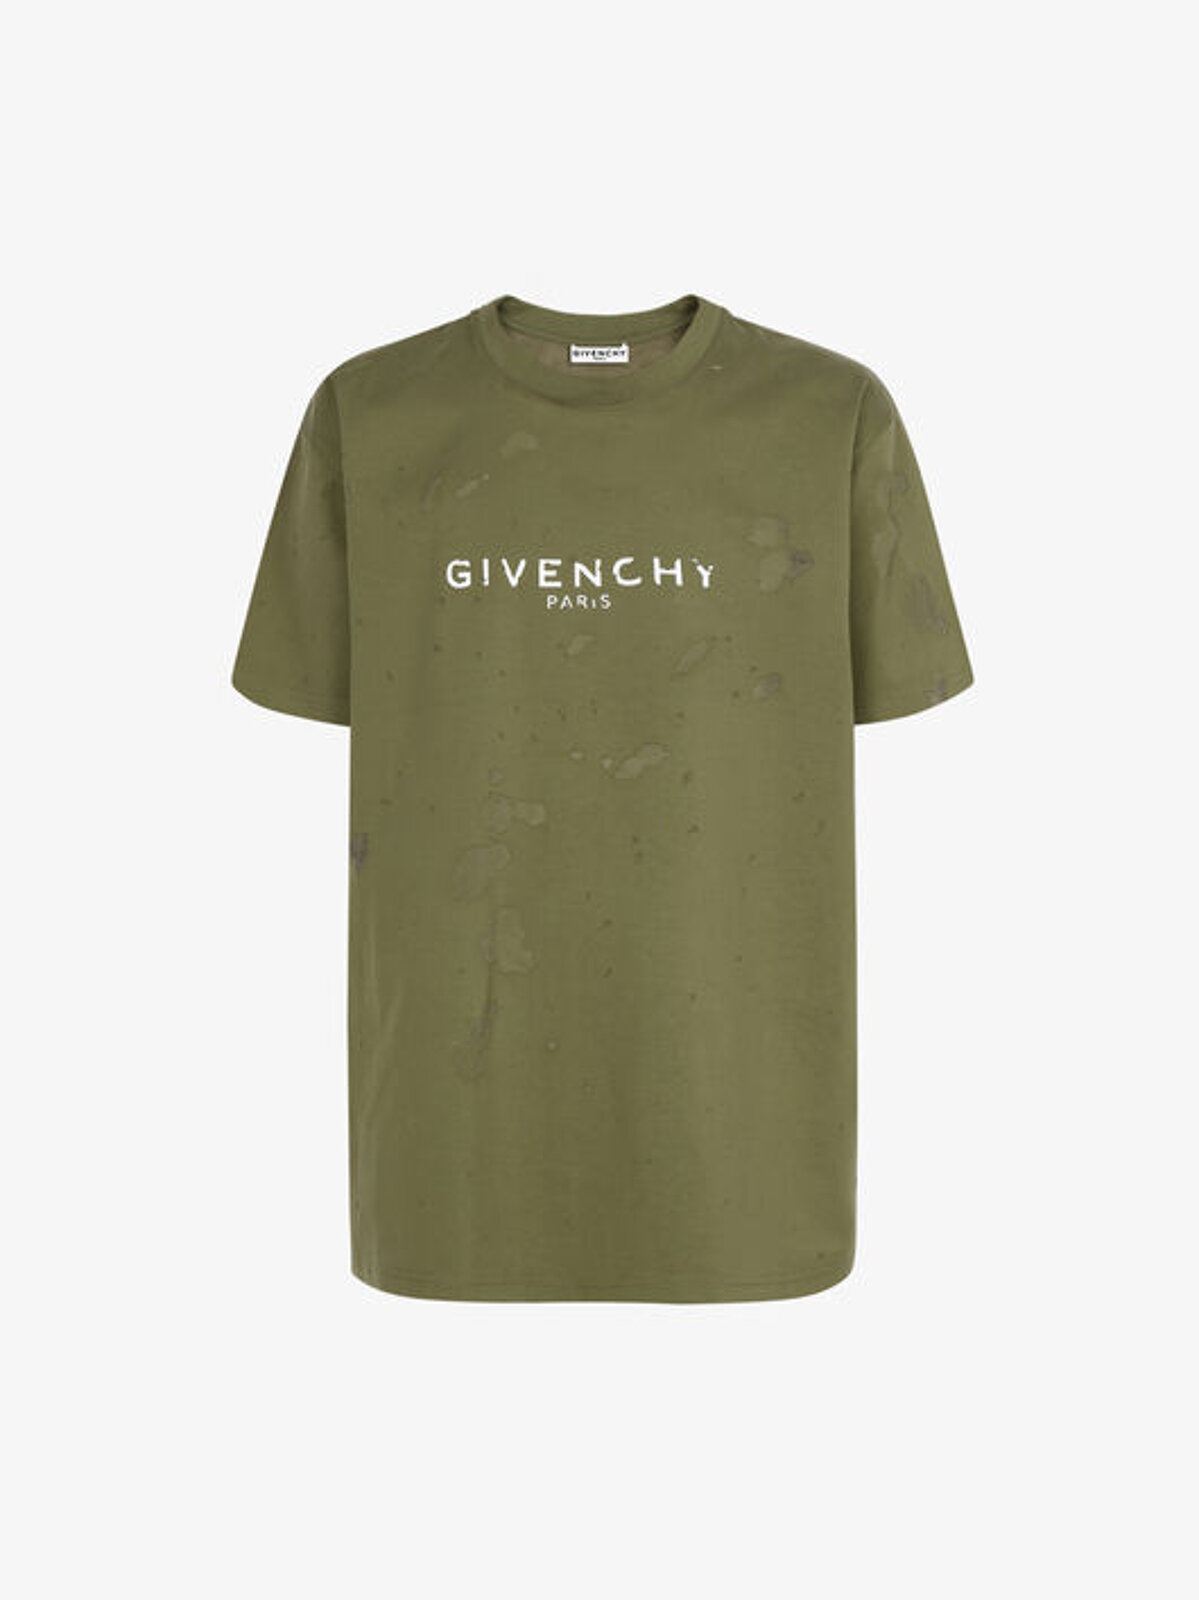 GIVENCHY PARIS destroyed effect T-shirt - Givenchy